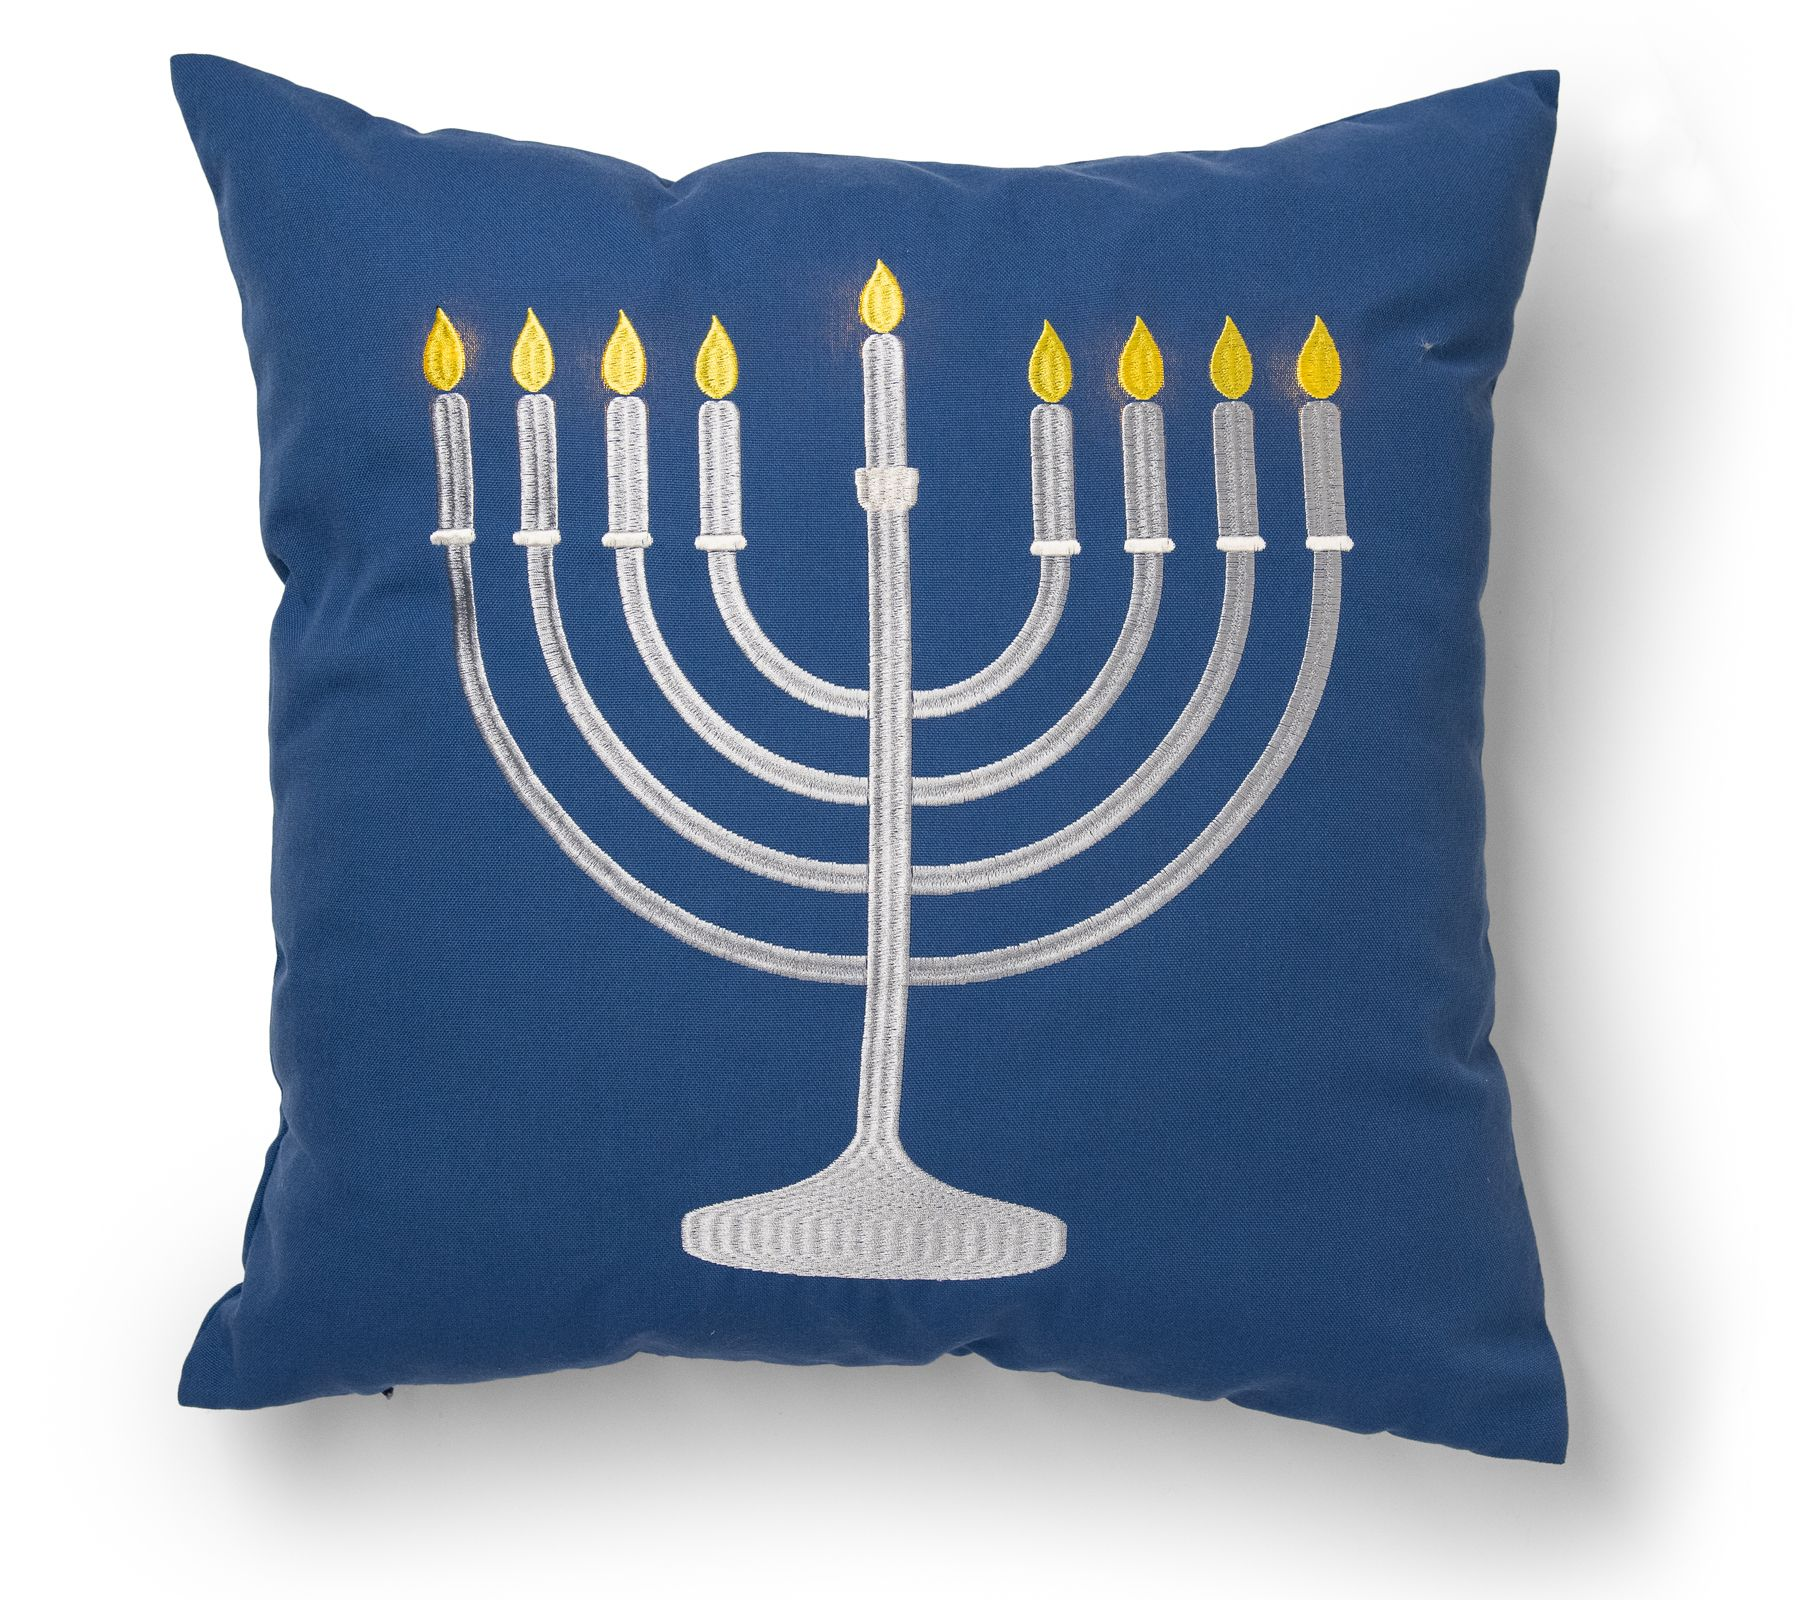 Light up menorah decorative throw pillow